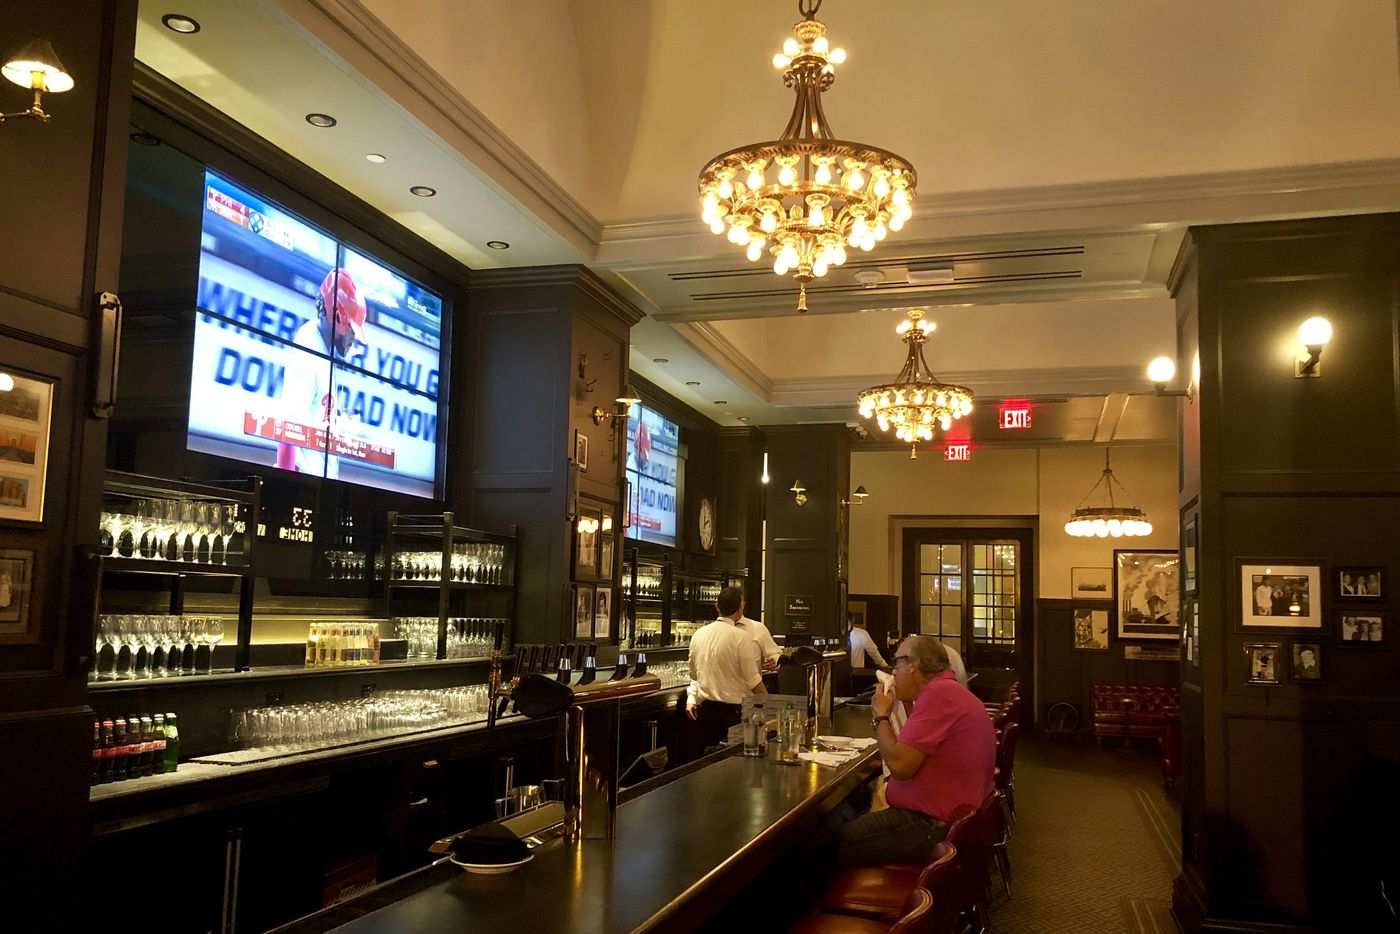 P.J. Clarke's, the NYC bar, opens in Philly – after 921 days